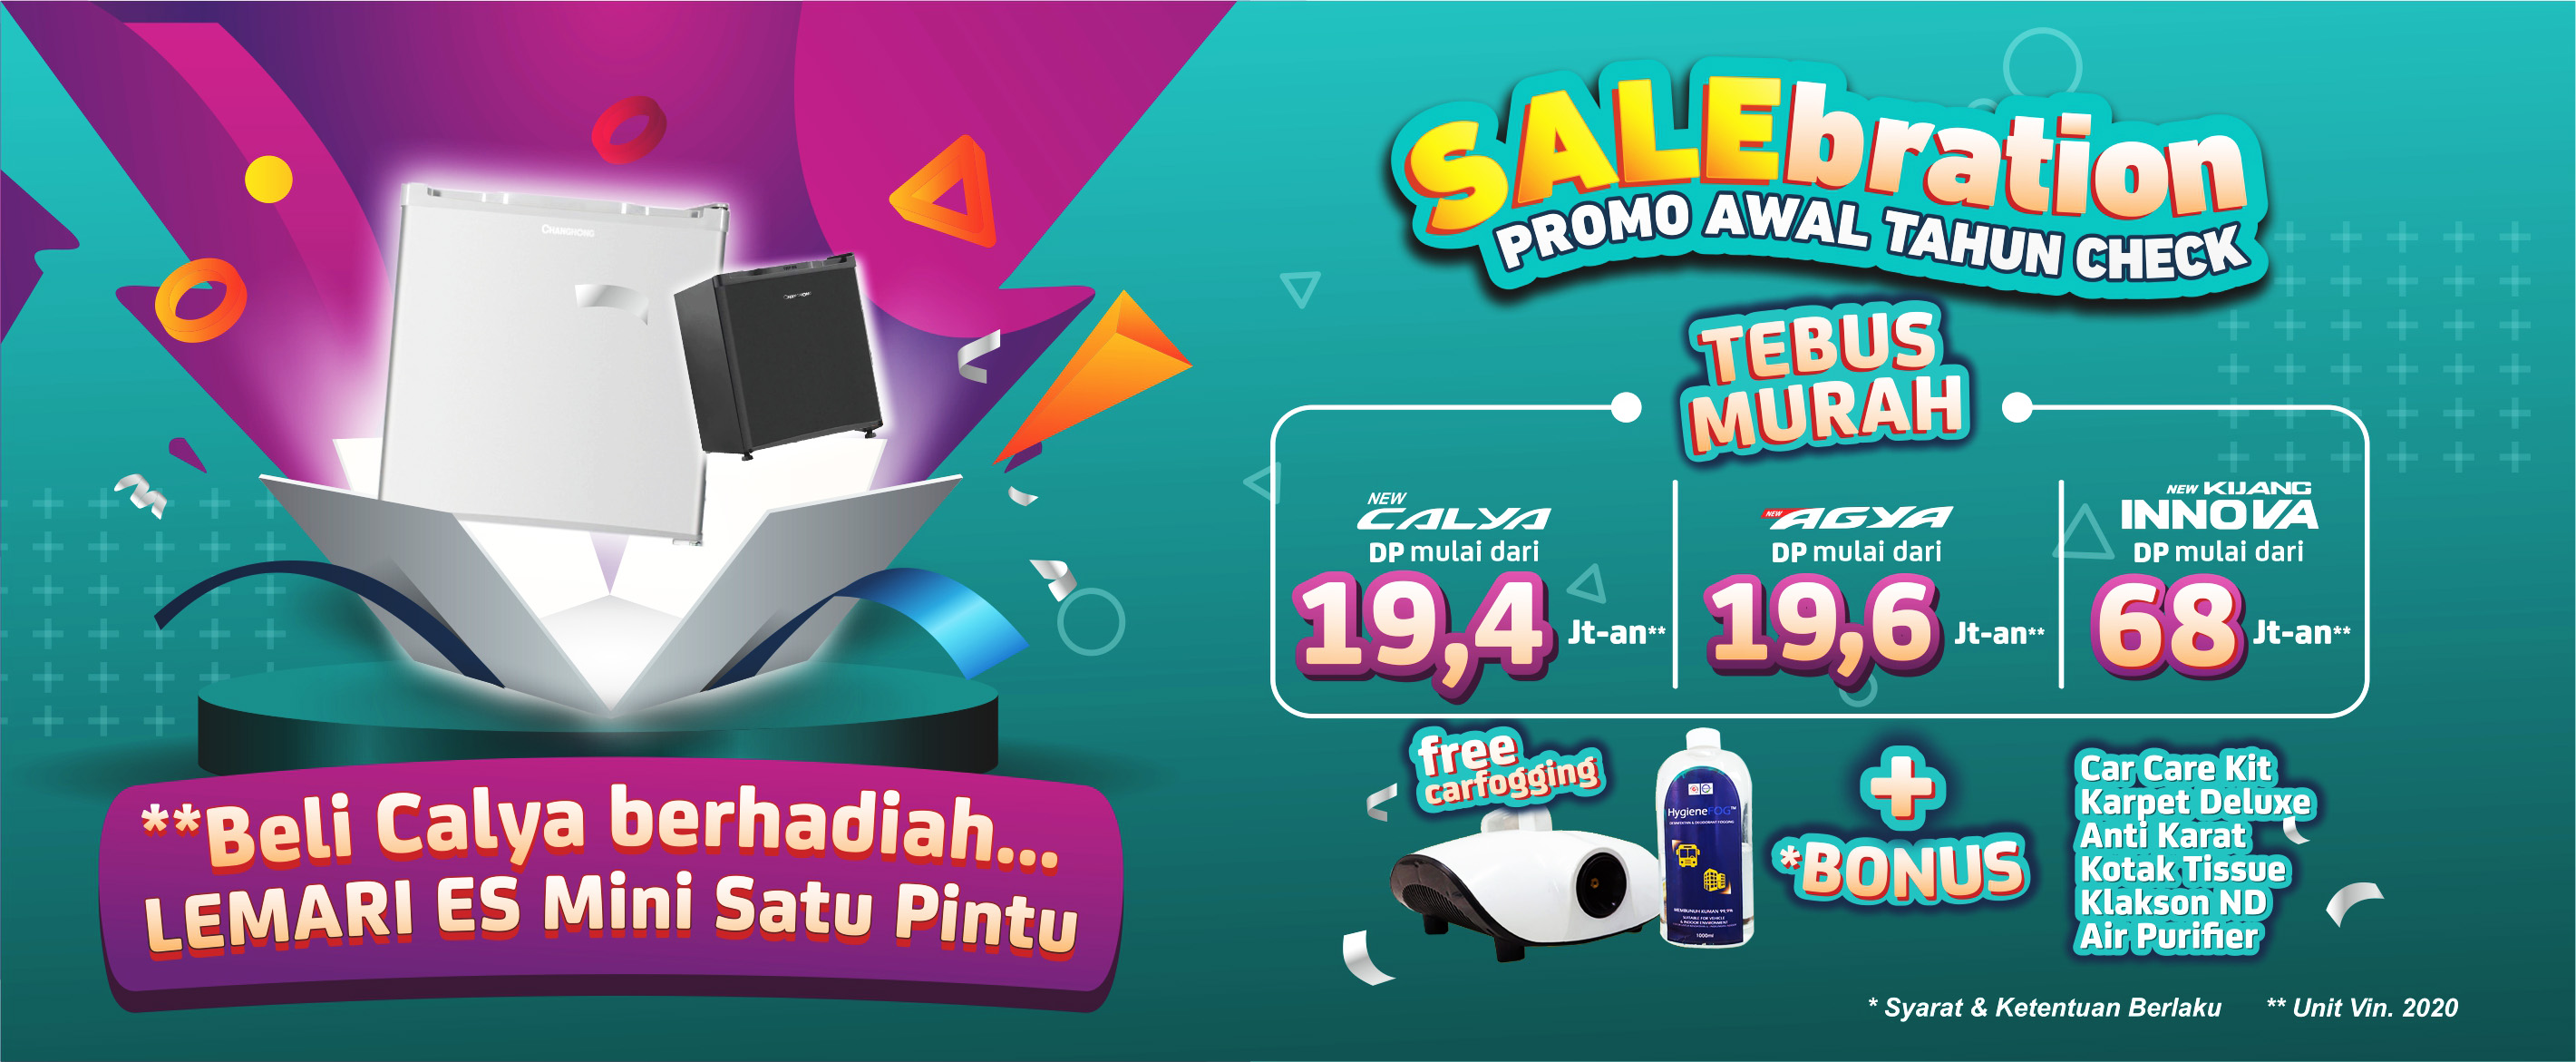 Promo Salebration Januari 2021